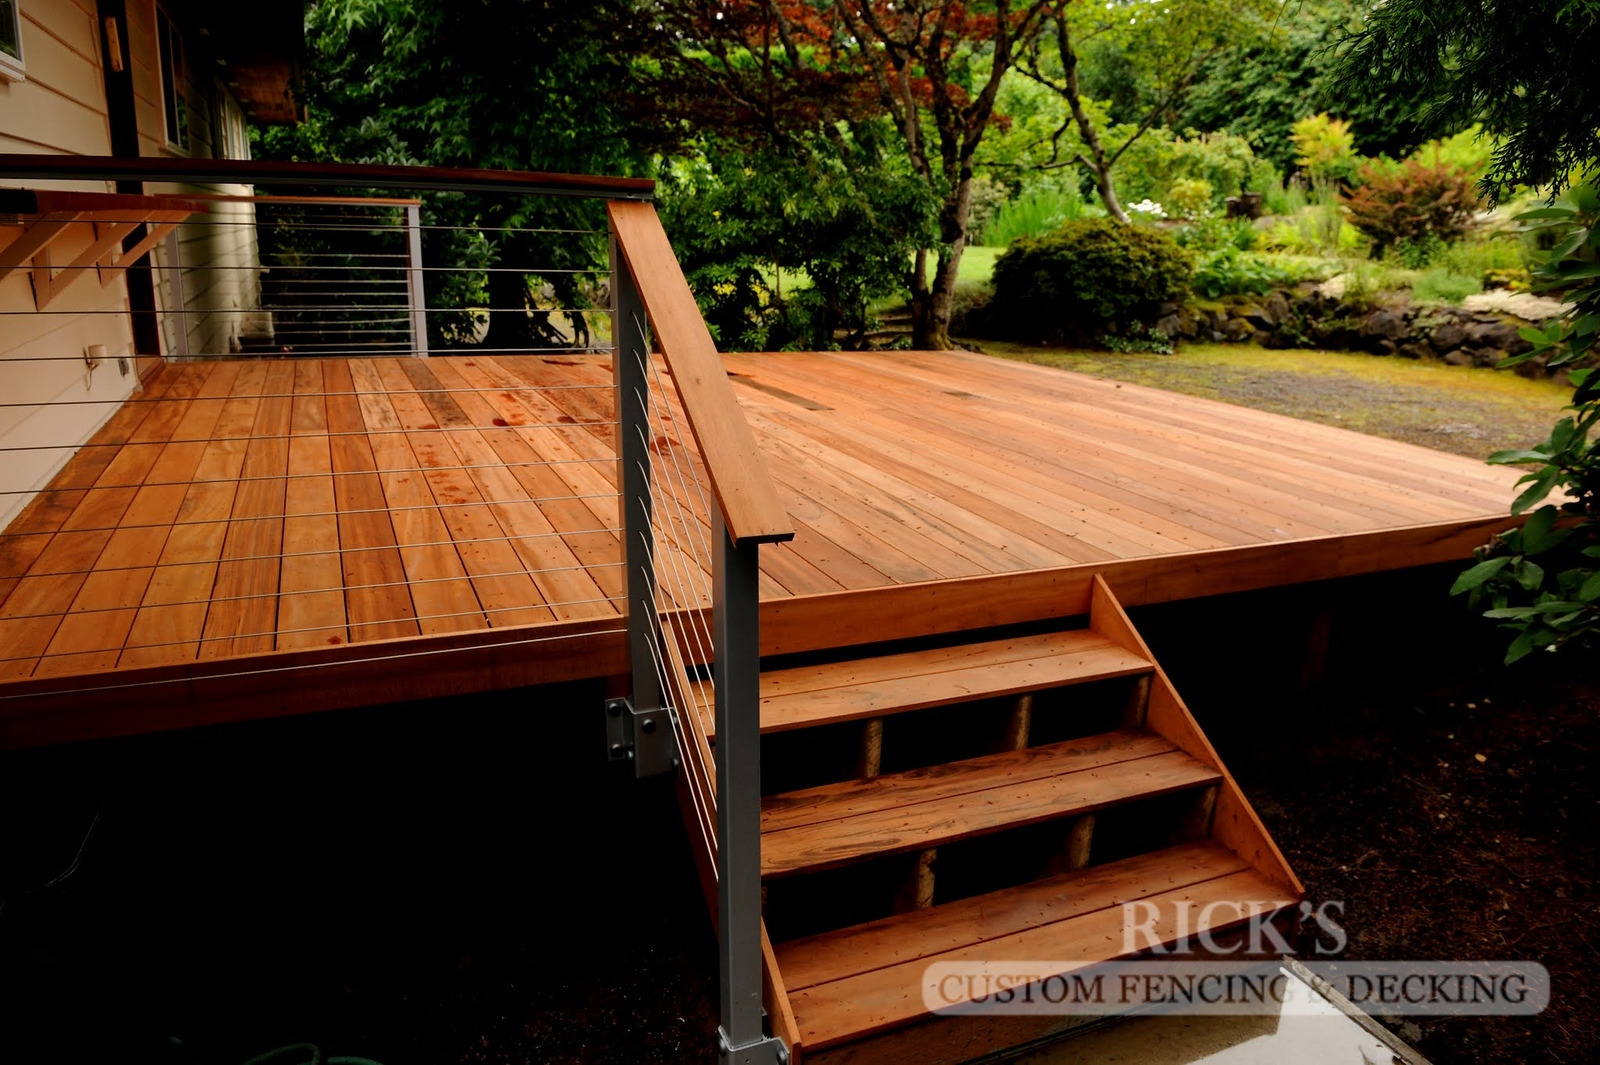 1106 - TigerWood Hardwood Decking